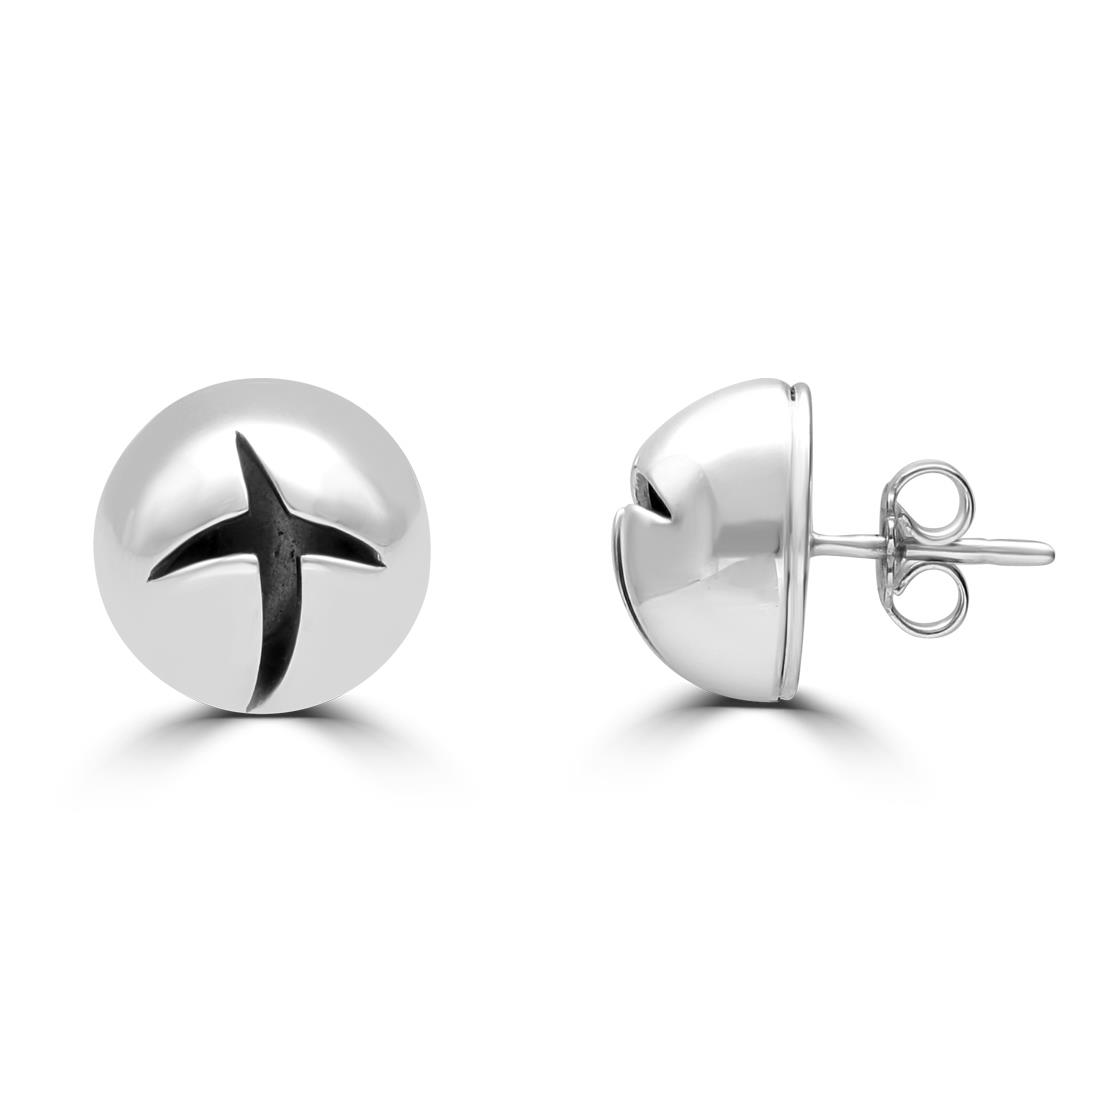 Sterling silver earrings with carved crosses